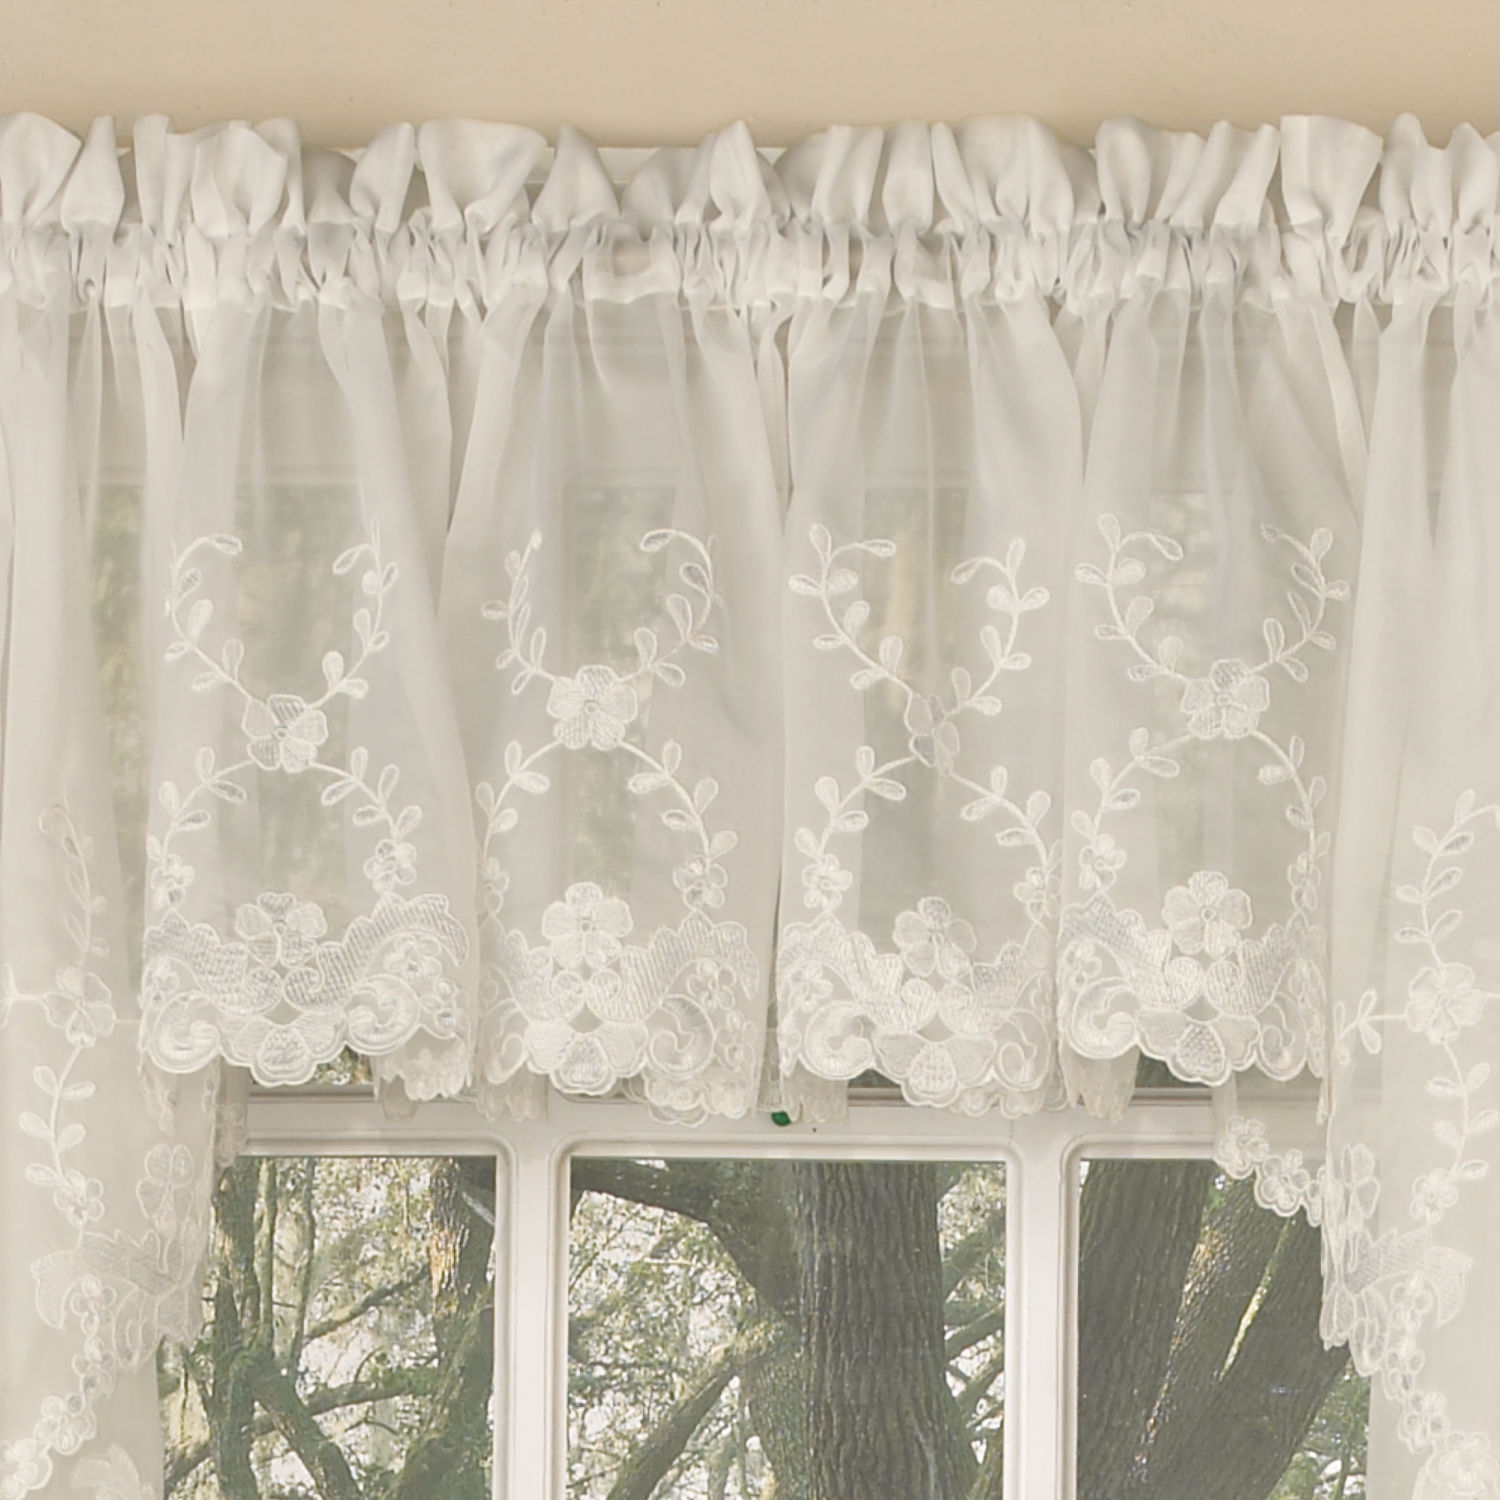 Laurel leaf sheer voile embroidered ivory kitchen curtains for Valance curtains for kitchen